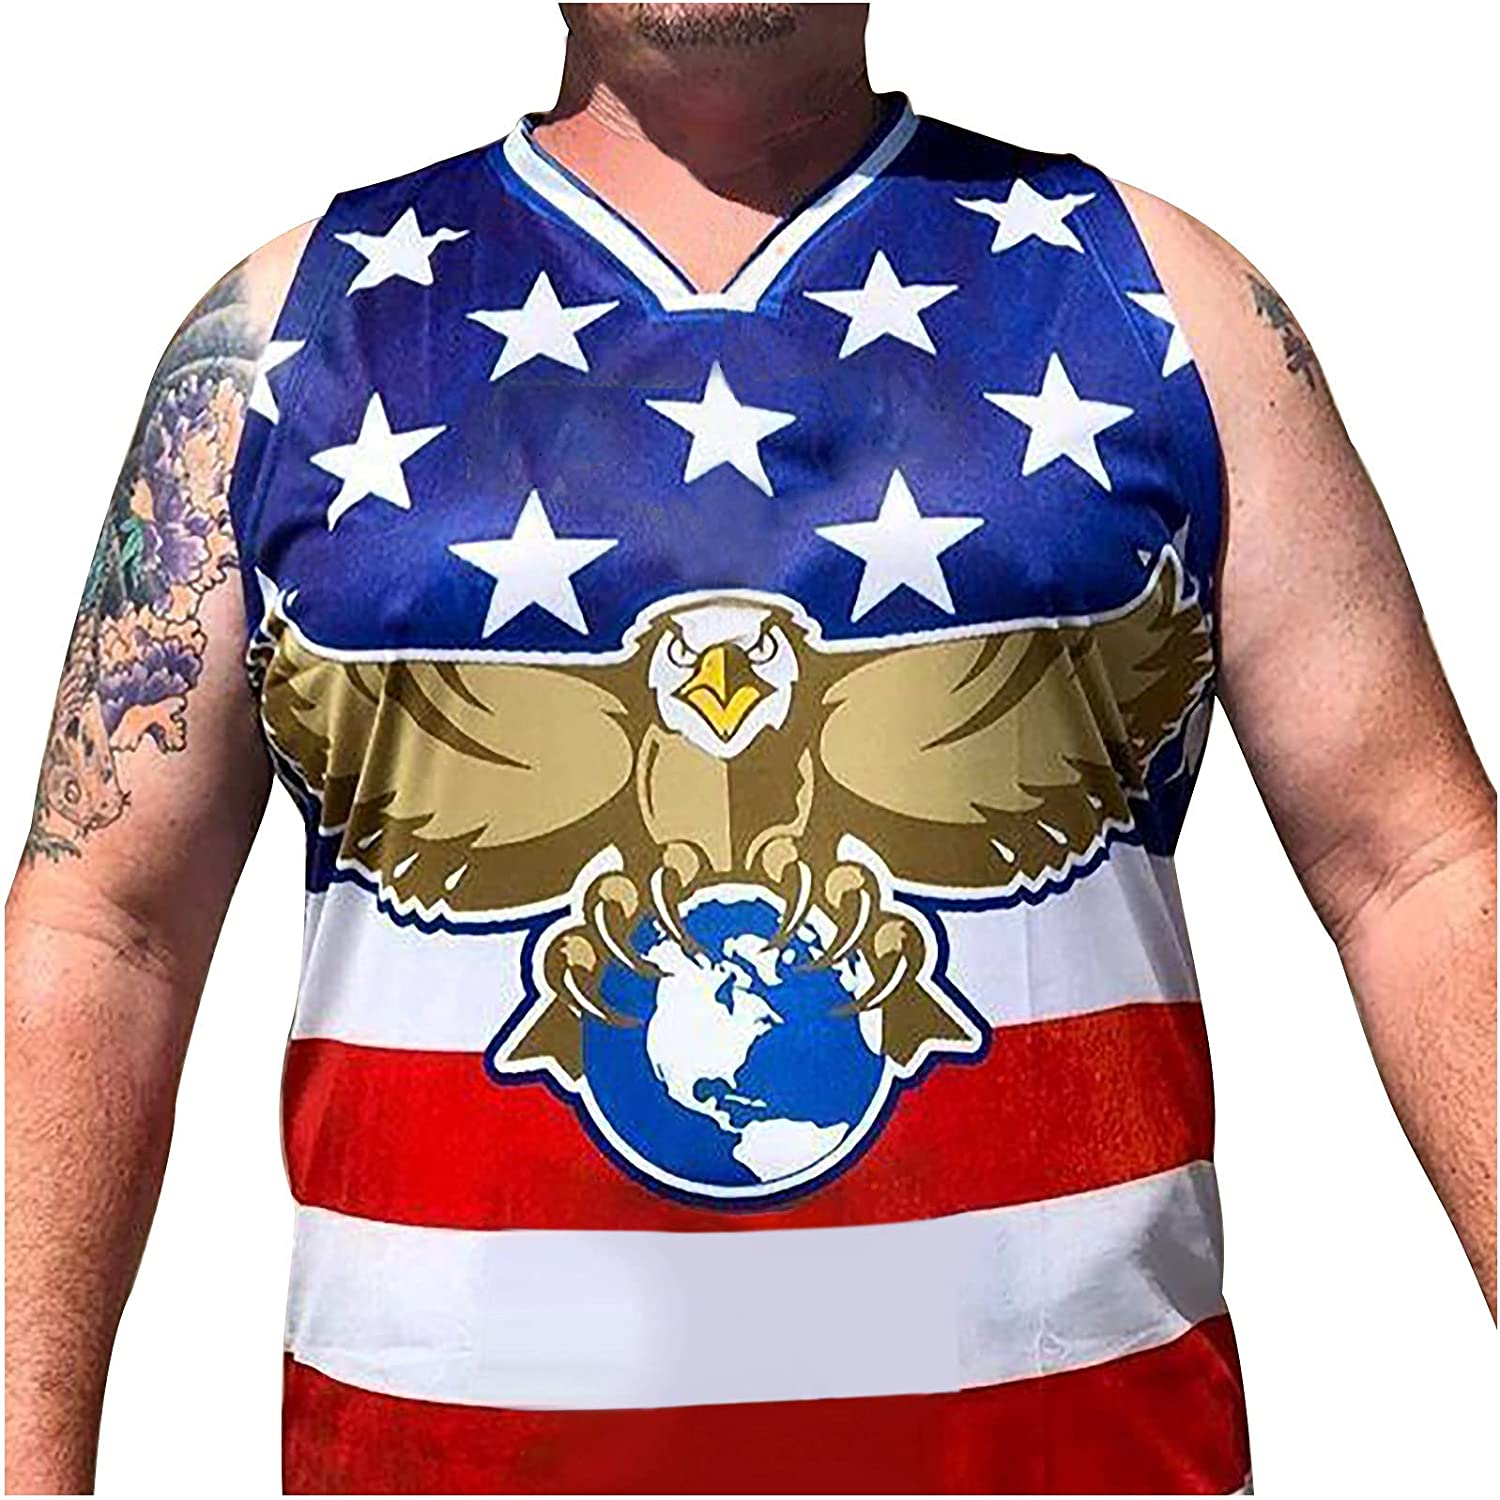 2021 Fashion Jersey Shirt for Men's/Women's, Independence Day Printed Sleeveless T-Shirt Vest Tank Tops Blouse